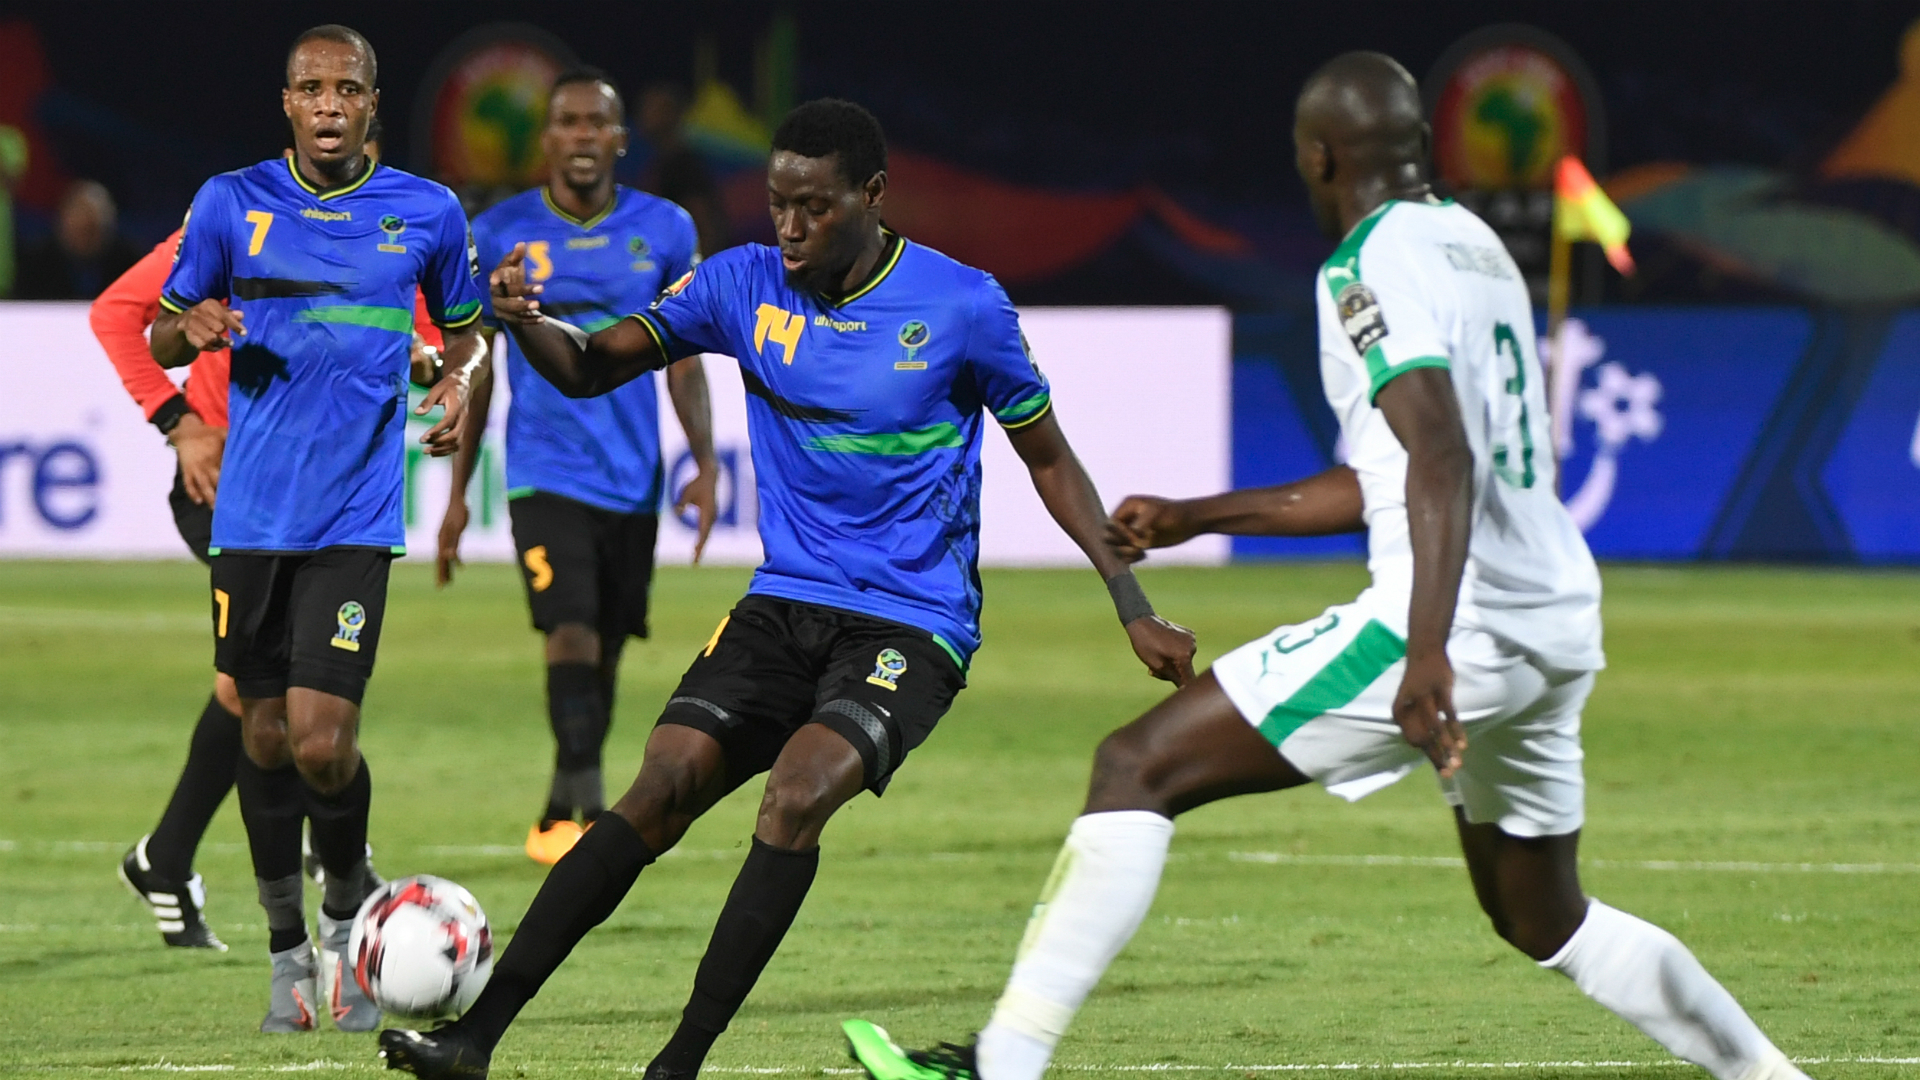 Afcon 2019: Koulibaly reassures Senegal fans after 'serious' Sane injury